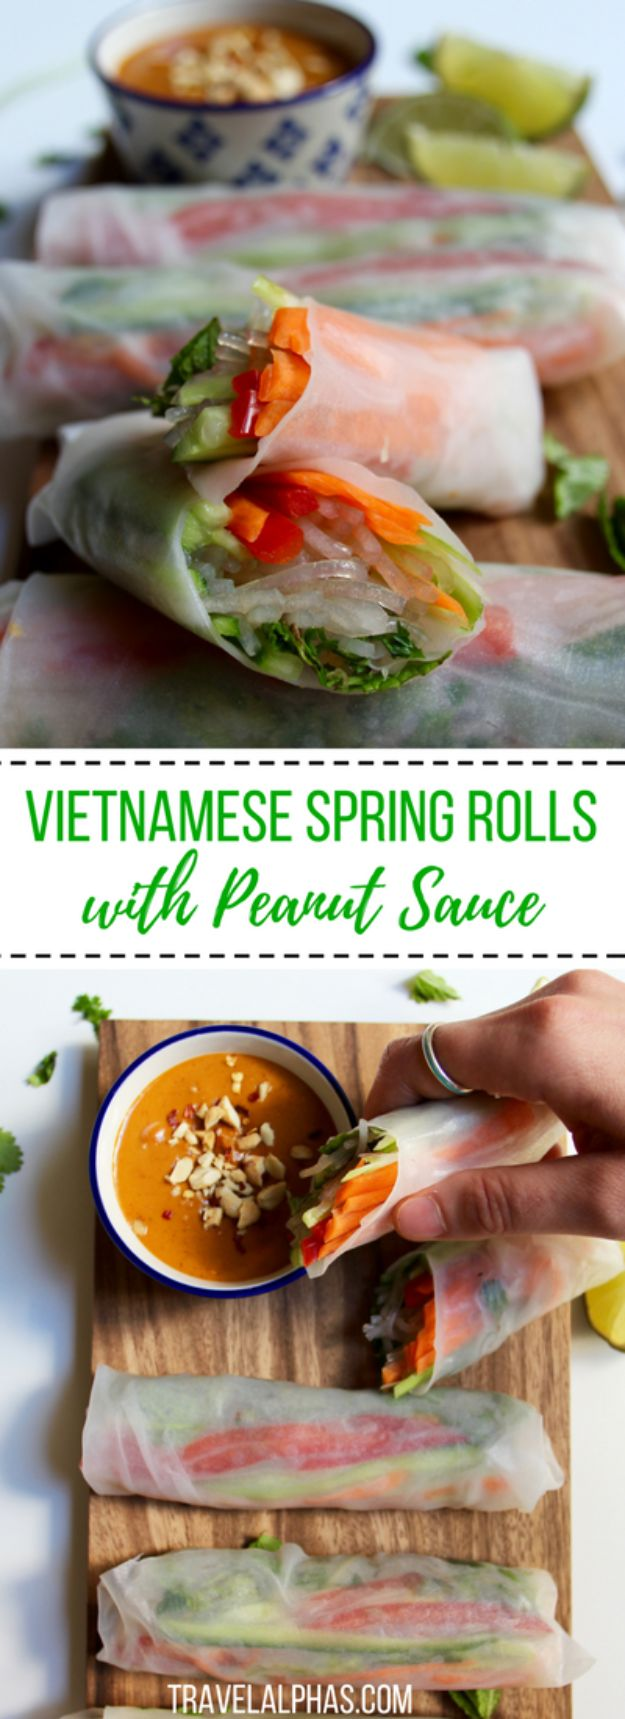 Gluten Free Appetizers - Vietnamese Spring Rolls With Peanut Sauce - Easy Flourless and Glutenfree Snacks, Wraps, Finger Foods and Snack Recipes - Recipe Ideas for Gluten Free Diets - Spinach and Cheese Dips, Vegetable Spreads, Sushi rolls, Quick Grill Foods, Party Trays, Dessert Bites, Healthy Veggie and Fruit Appetizer Tutorials #glutenfree #appetizers #appetizerrecipes #glutenfreerecipes #recipeideas #diyjoy http://diyjoy.com/gluten-free-appetizers